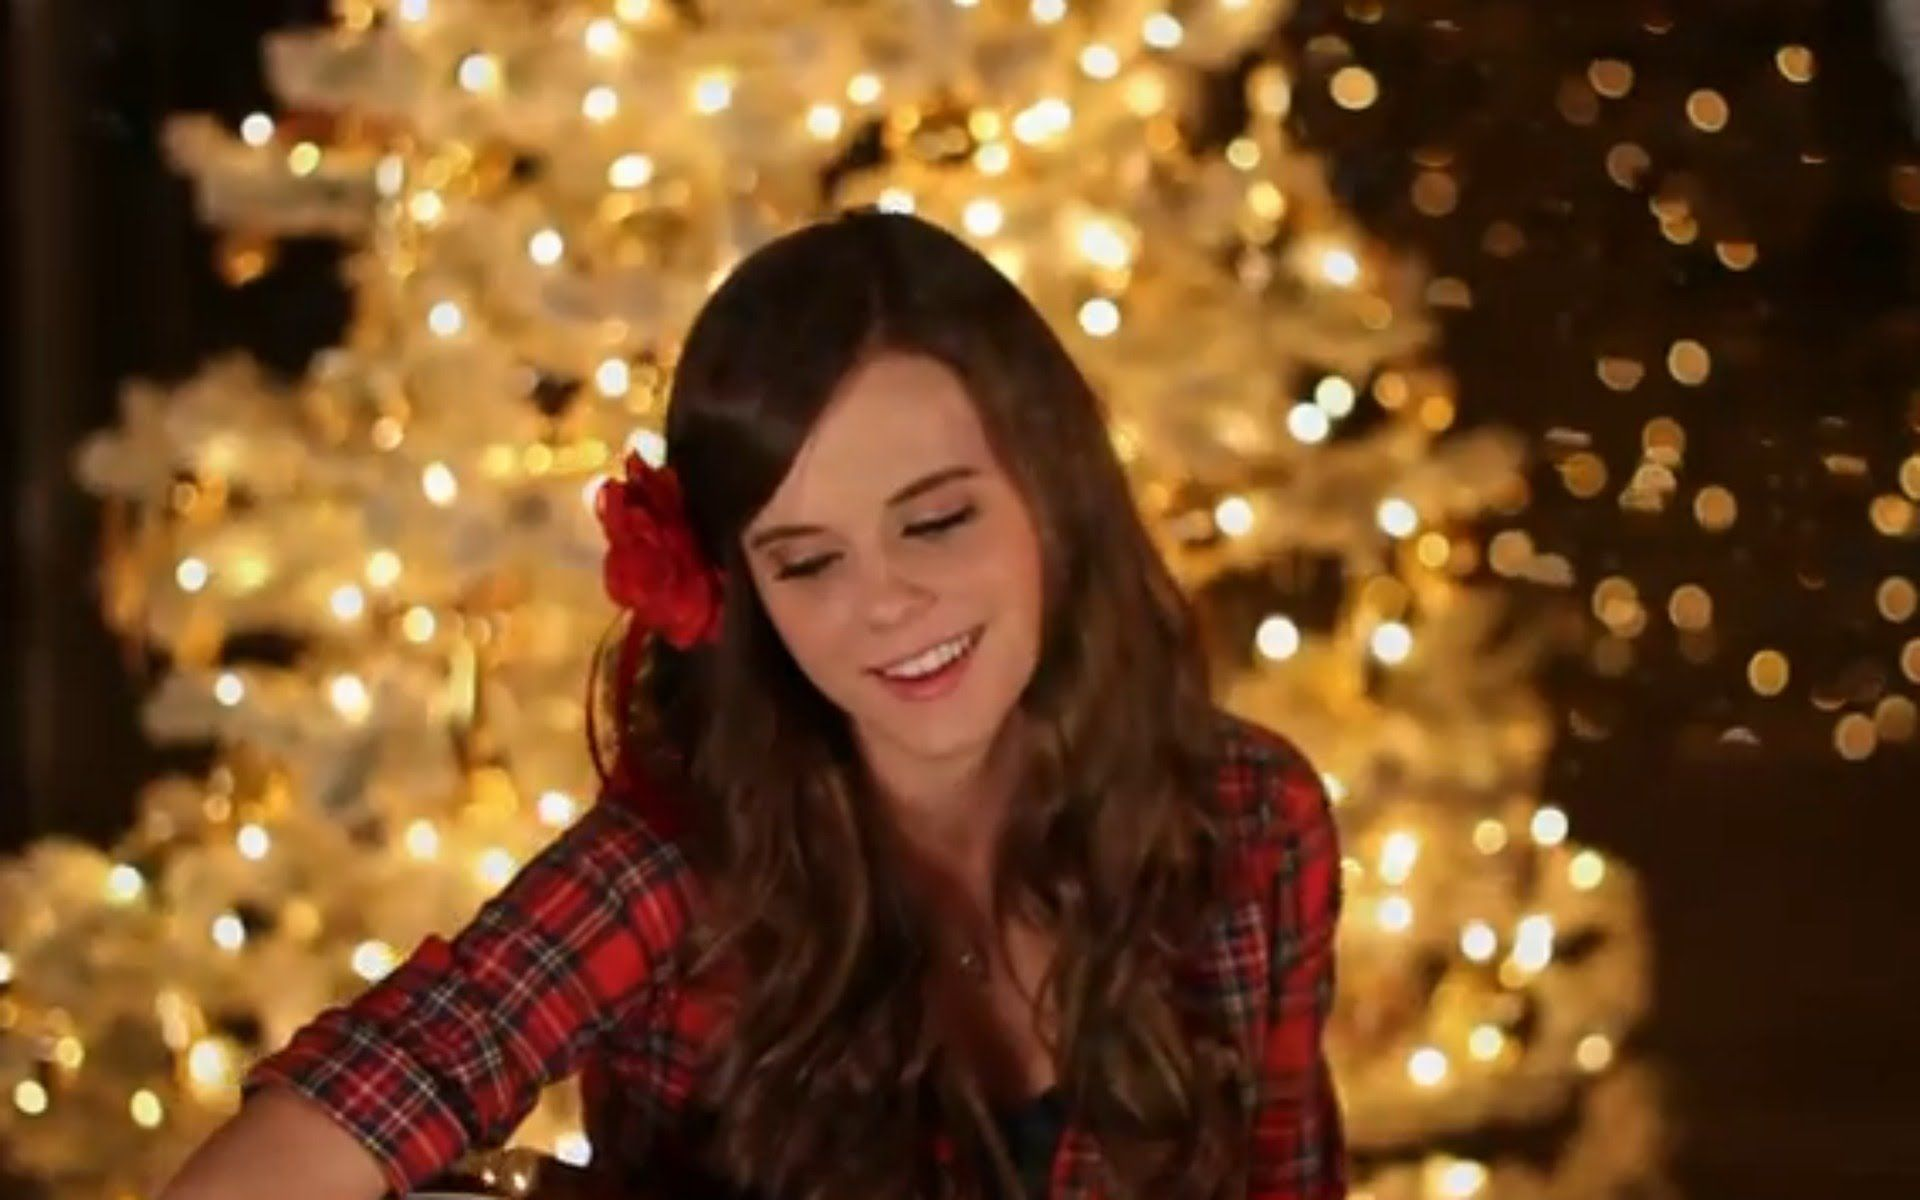 All I Want For Christmas Is You Mariah Carey Cover By Tiffanyalvord Mariah Carey Mariah Things I Want